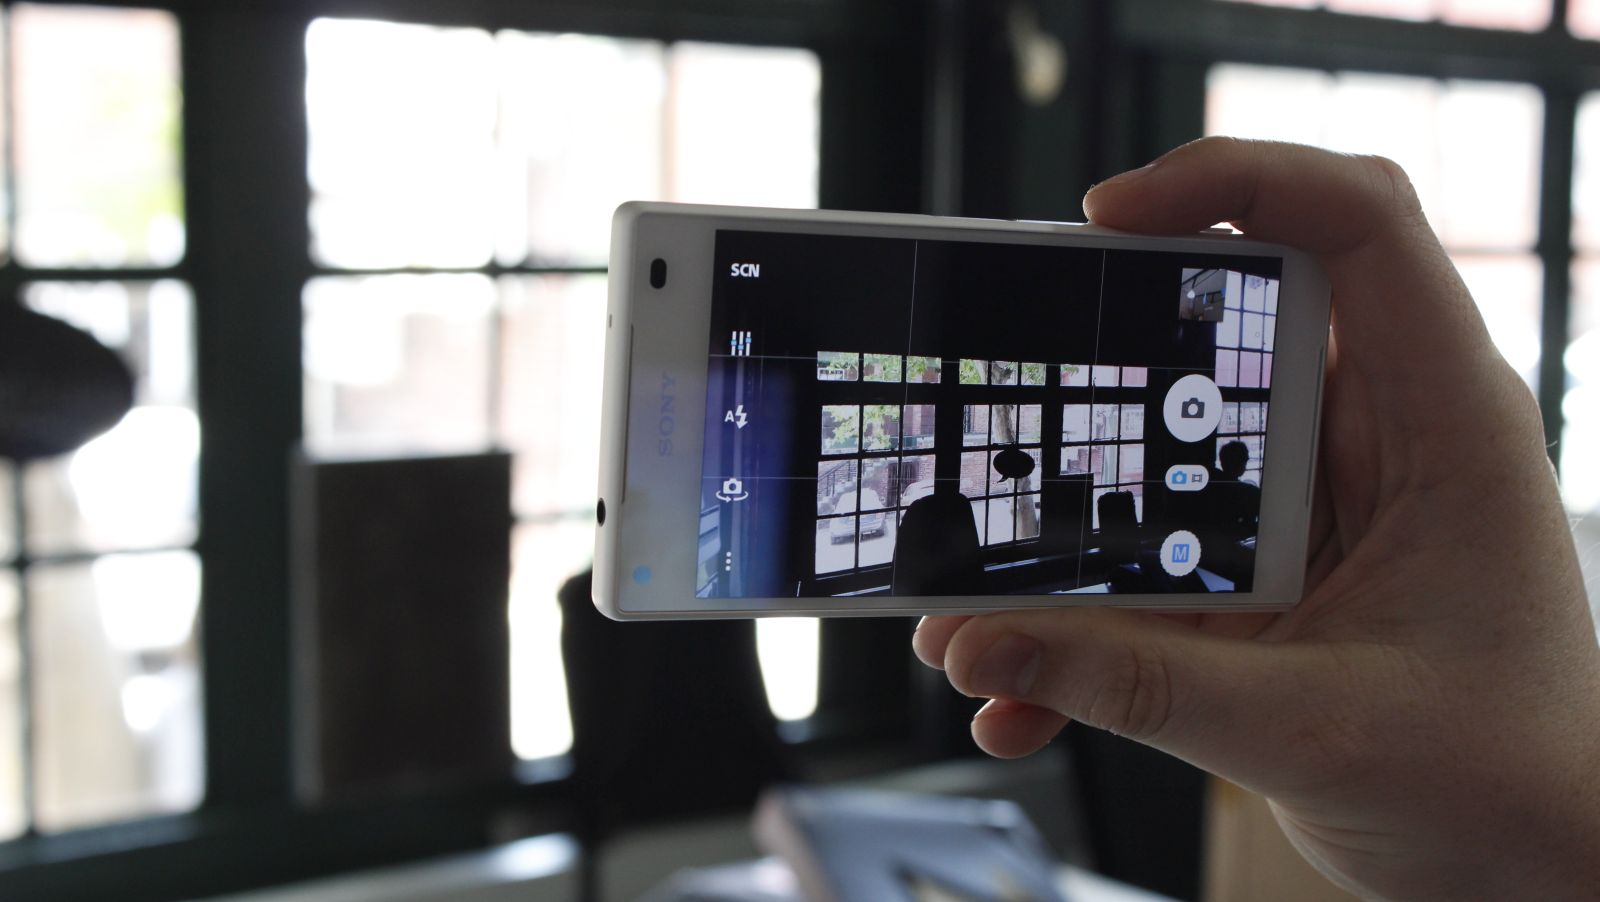 Sony Xperia Z3 Compact review 4